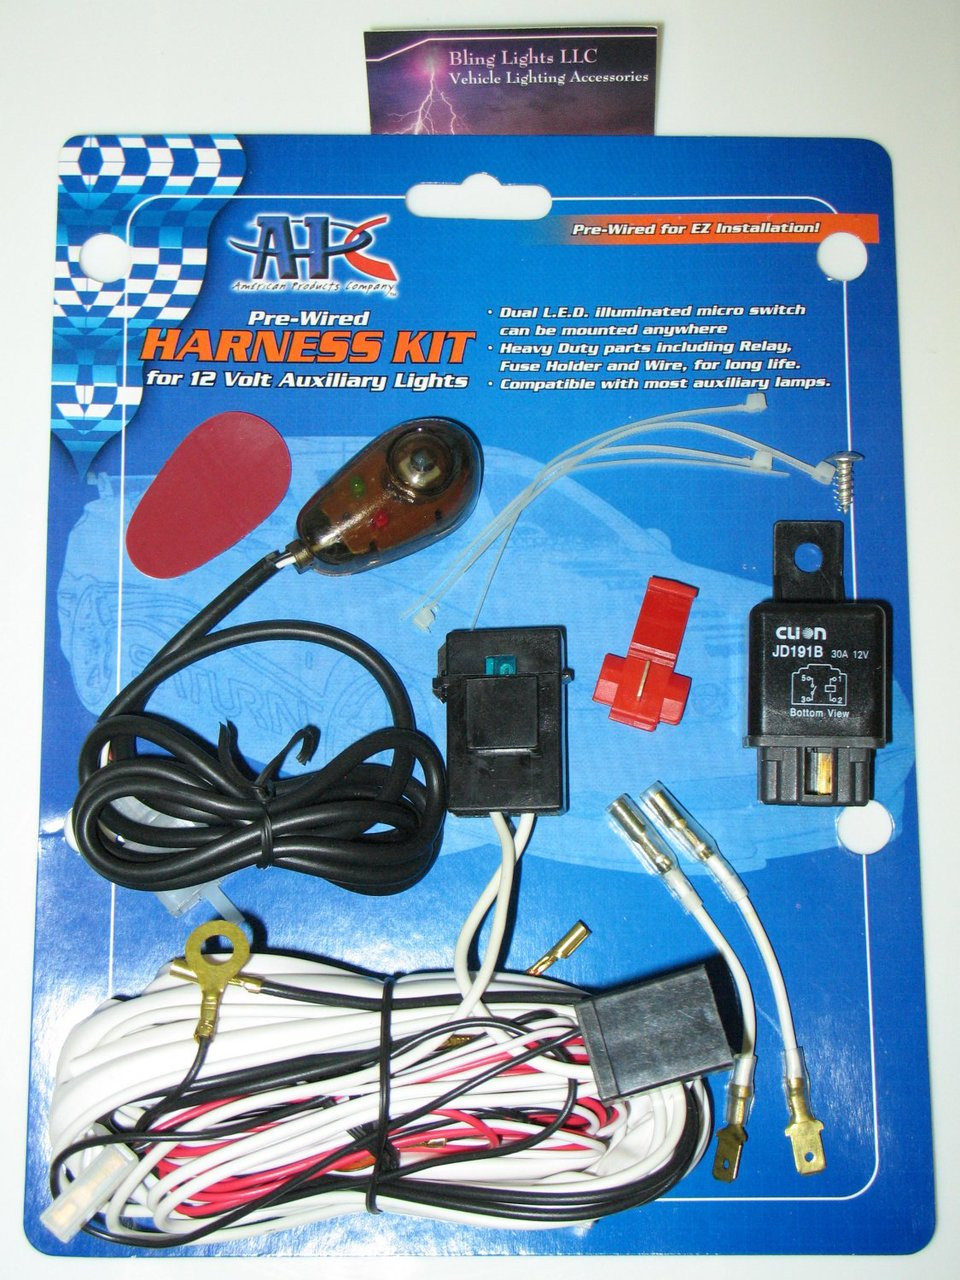 30 amp relay wiring kit driving light fog lamp harness 4x4 auxiliary off road wiring [ 960 x 1280 Pixel ]